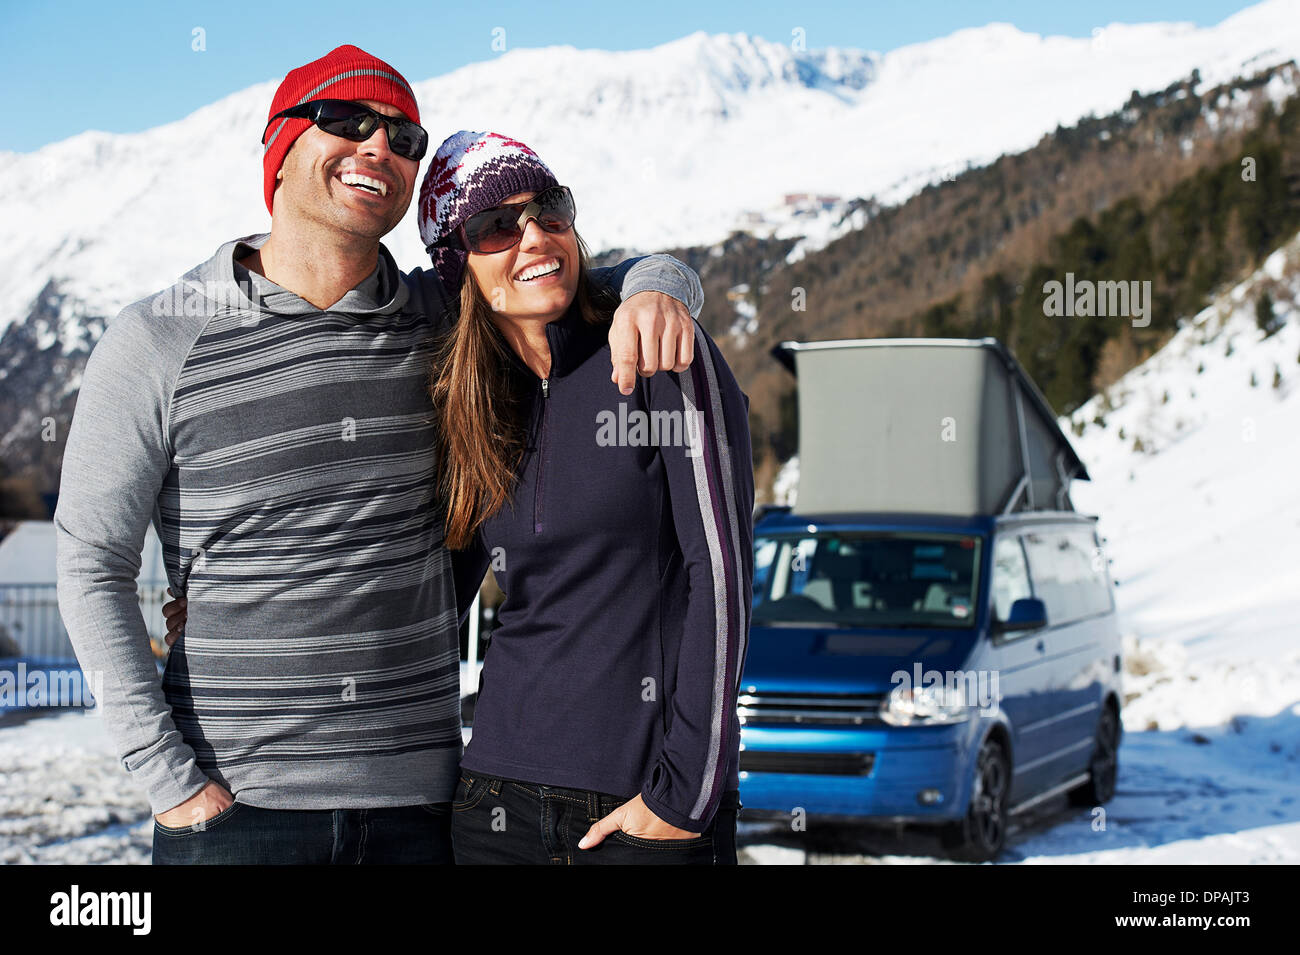 Mid adult couple with car in background, Obergurgl, Austria - Stock Image